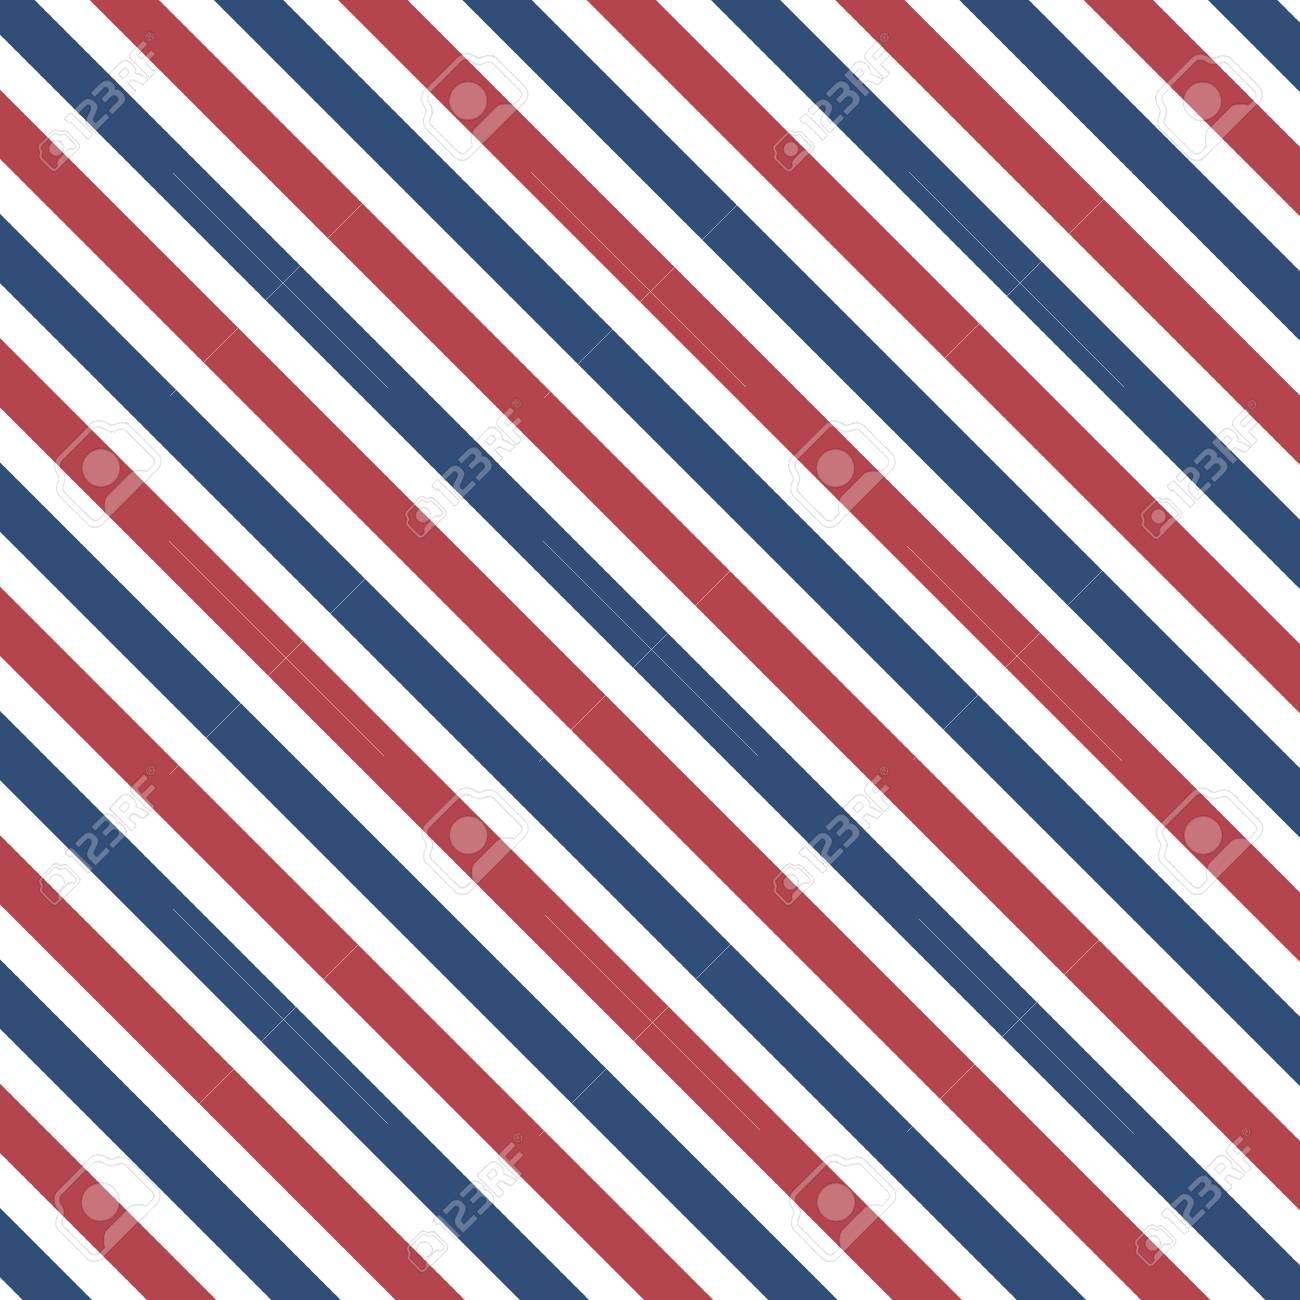 Abstract line pattern in barber colors background - 90389645